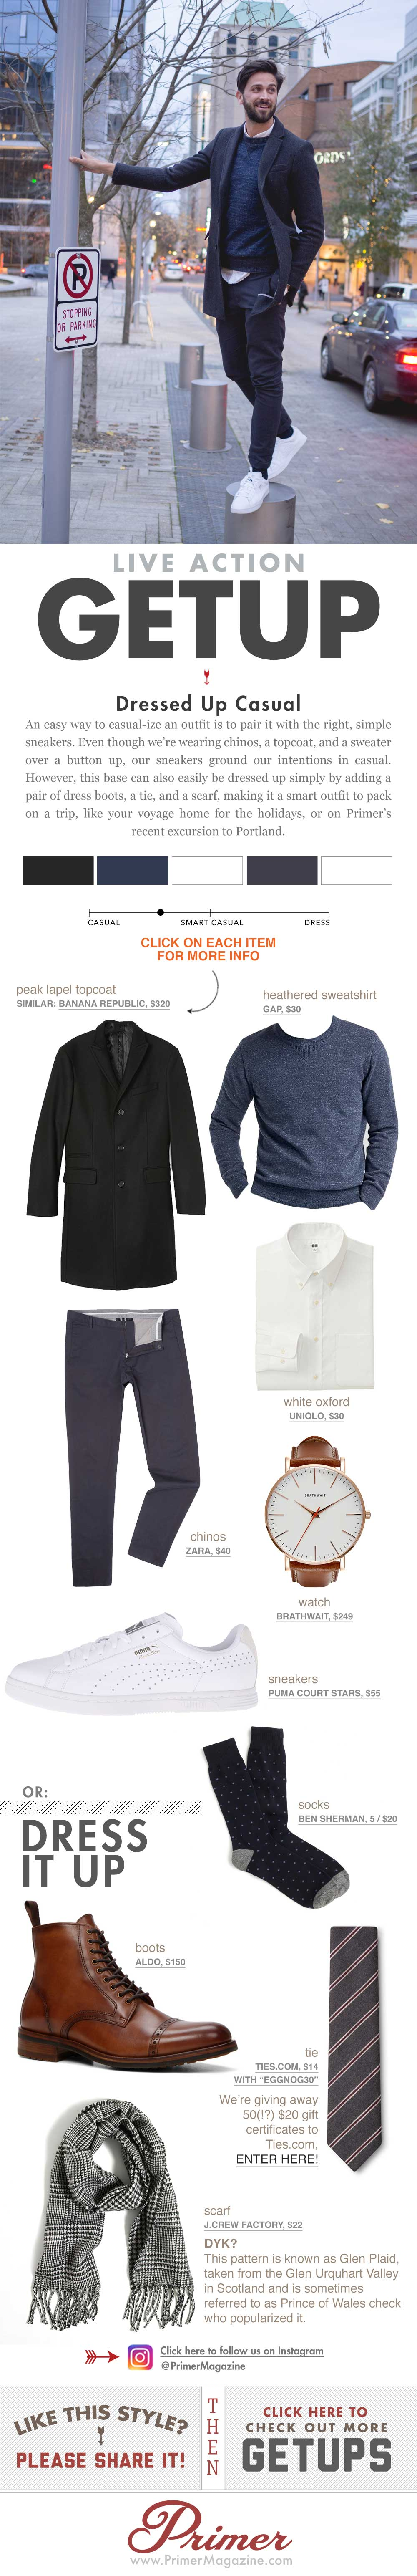 The Getup Dressed up Casual - inspiration with topcoat, chinos, and sneakers